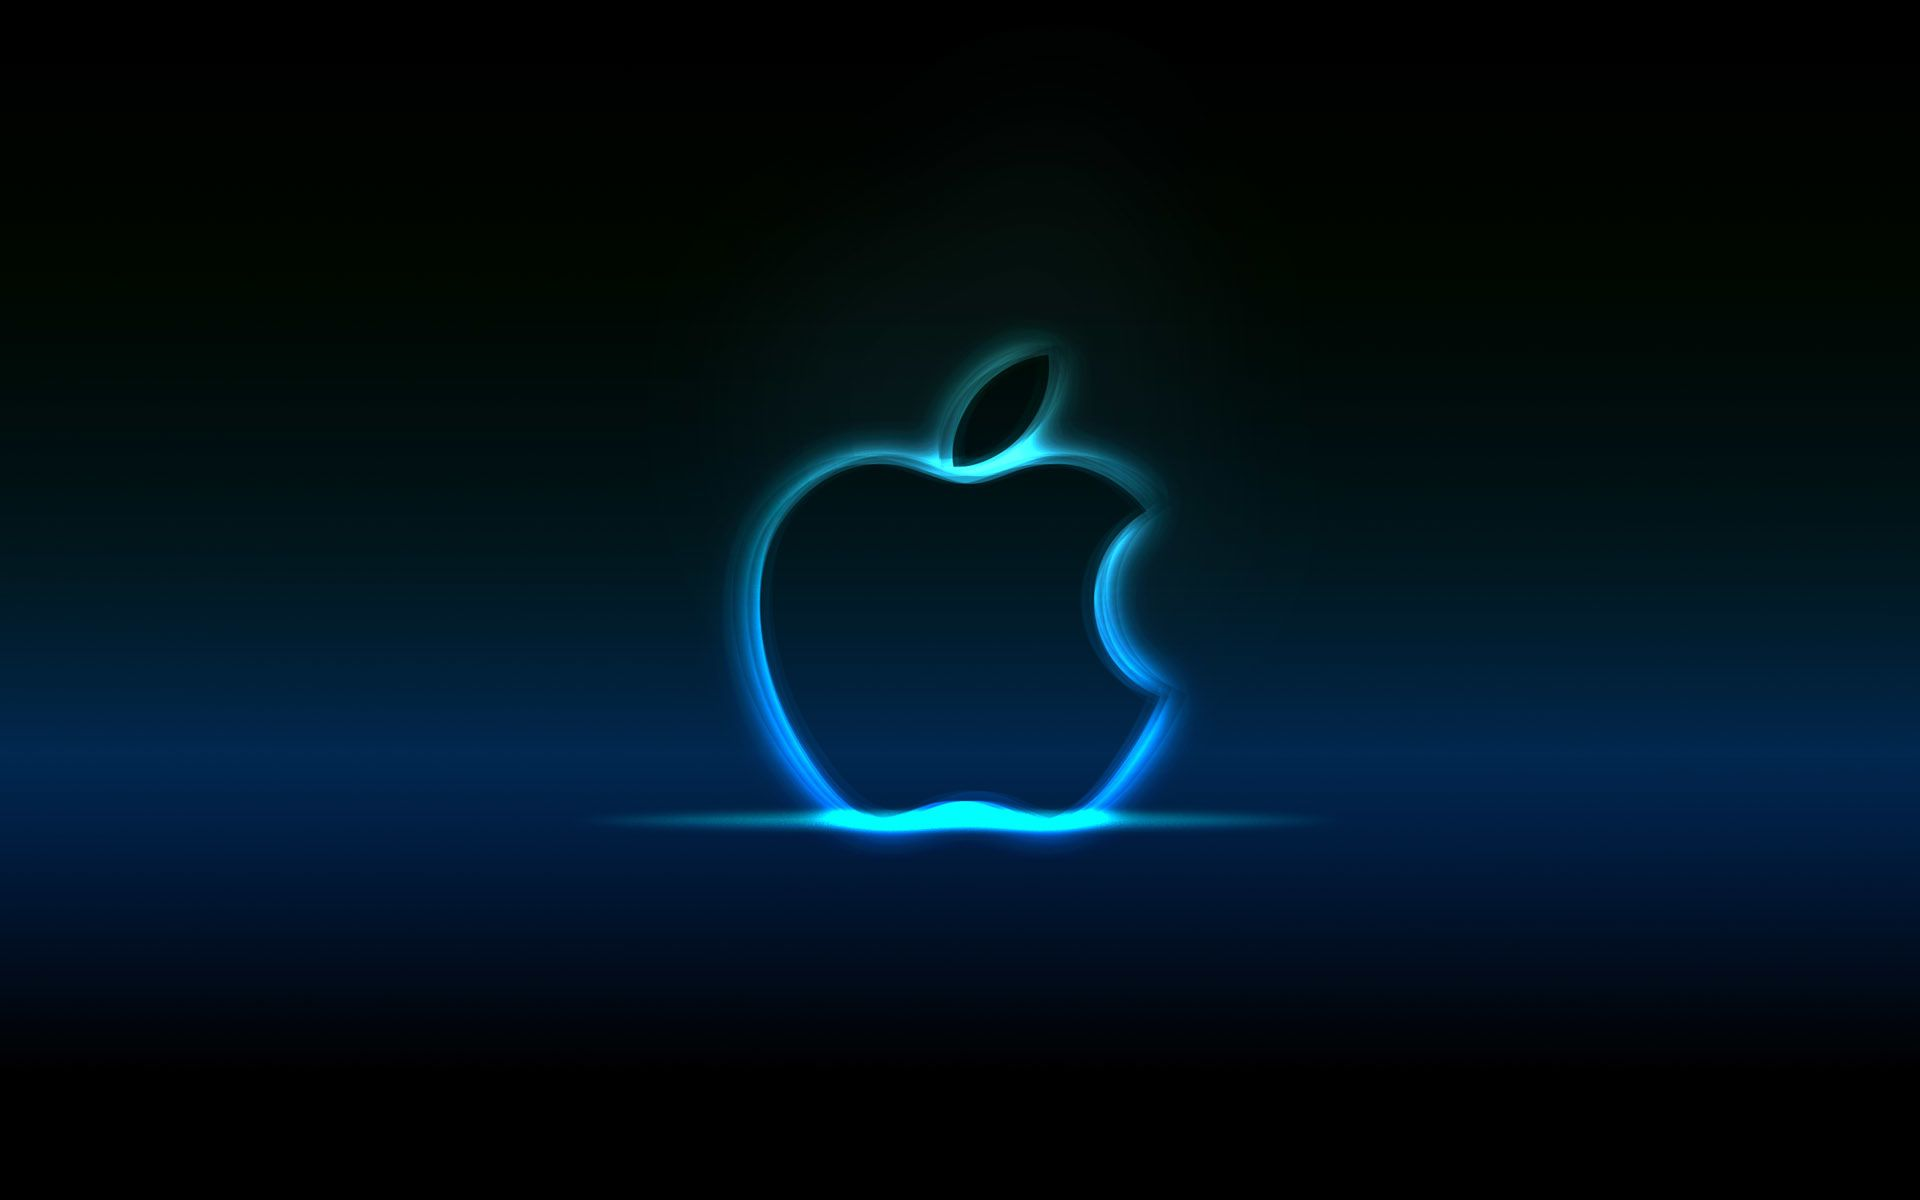 Technology Apple Wallpaper Apple wallpaper, Hd apple